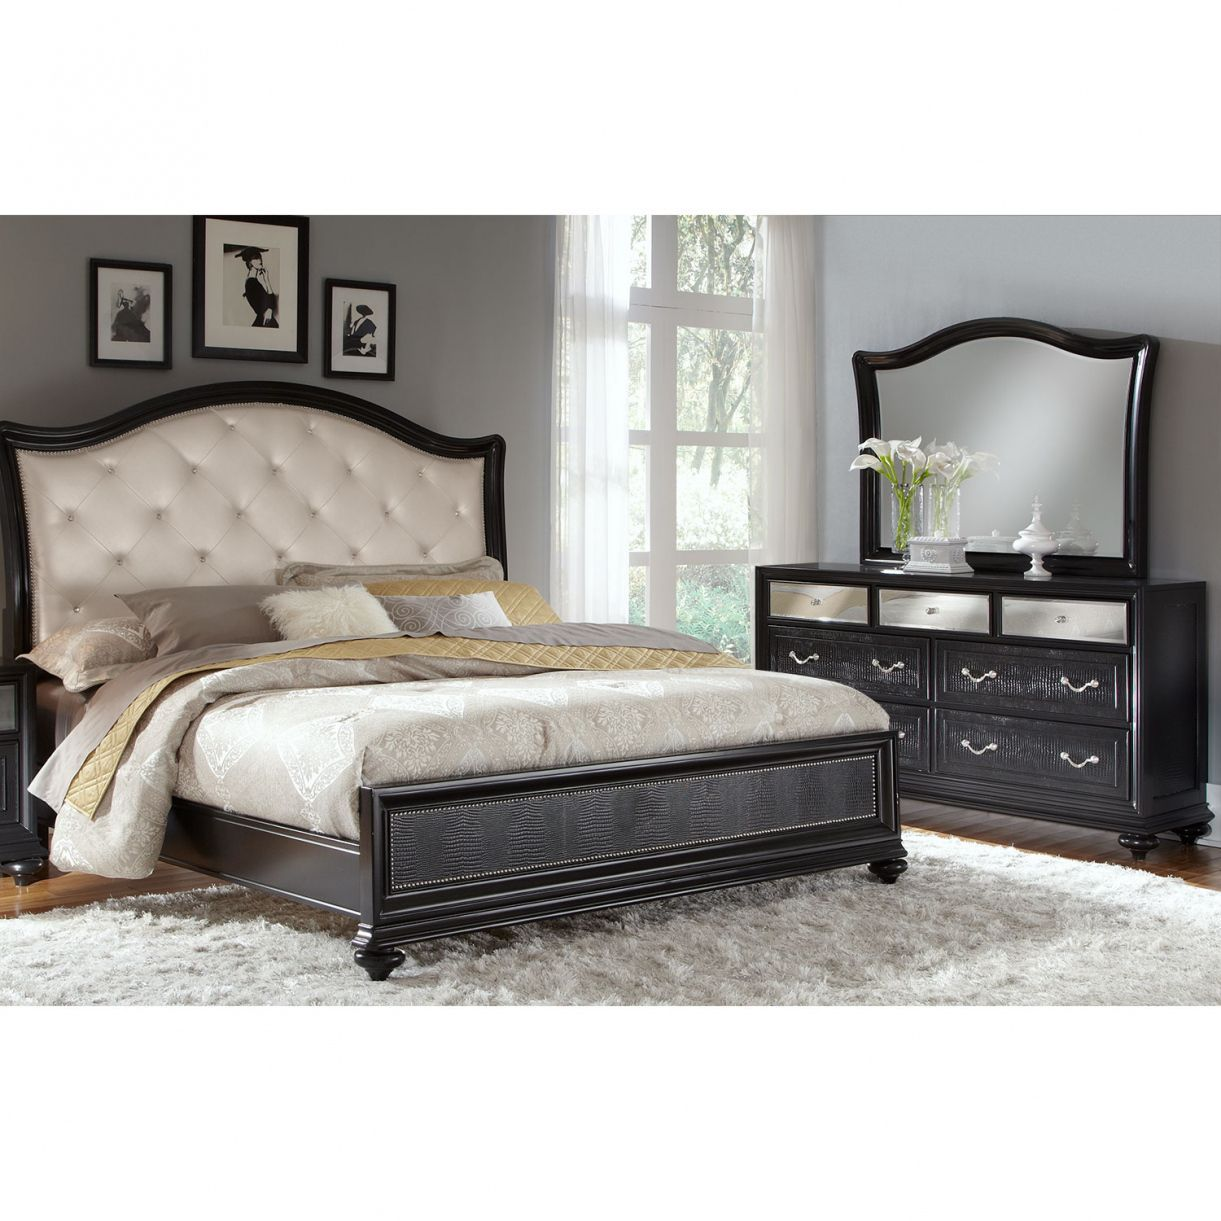 5 Piece Bedroom Furniture Sets Mens Interior Design Check More At Http